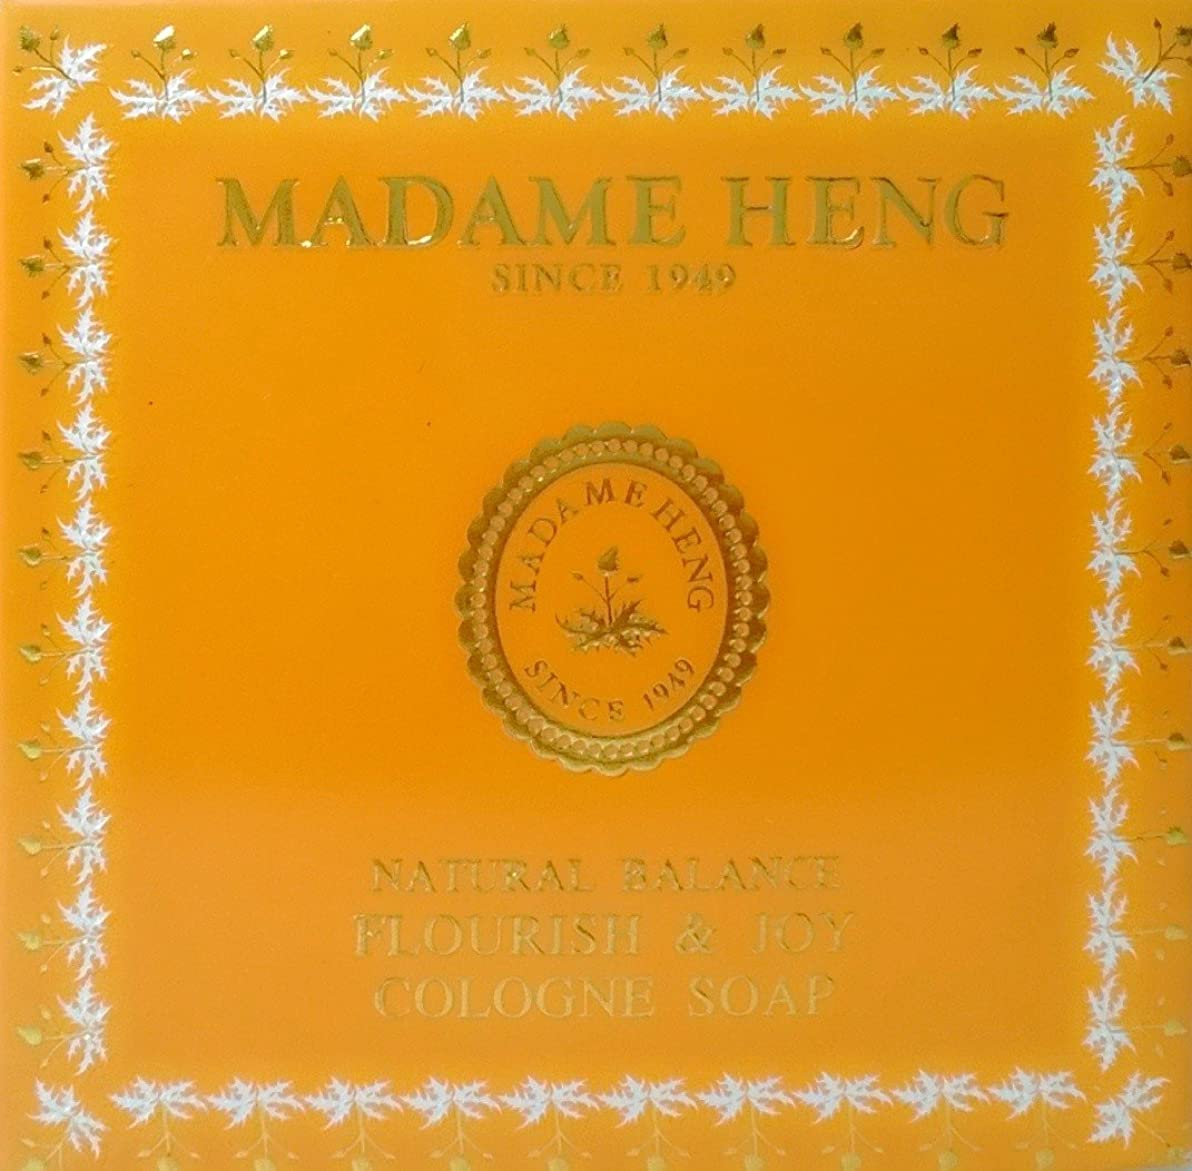 強調打ち負かす協力するMADAME HENG NATURAL BALANCE FLOURISH & JOY COLOGNE SOAP